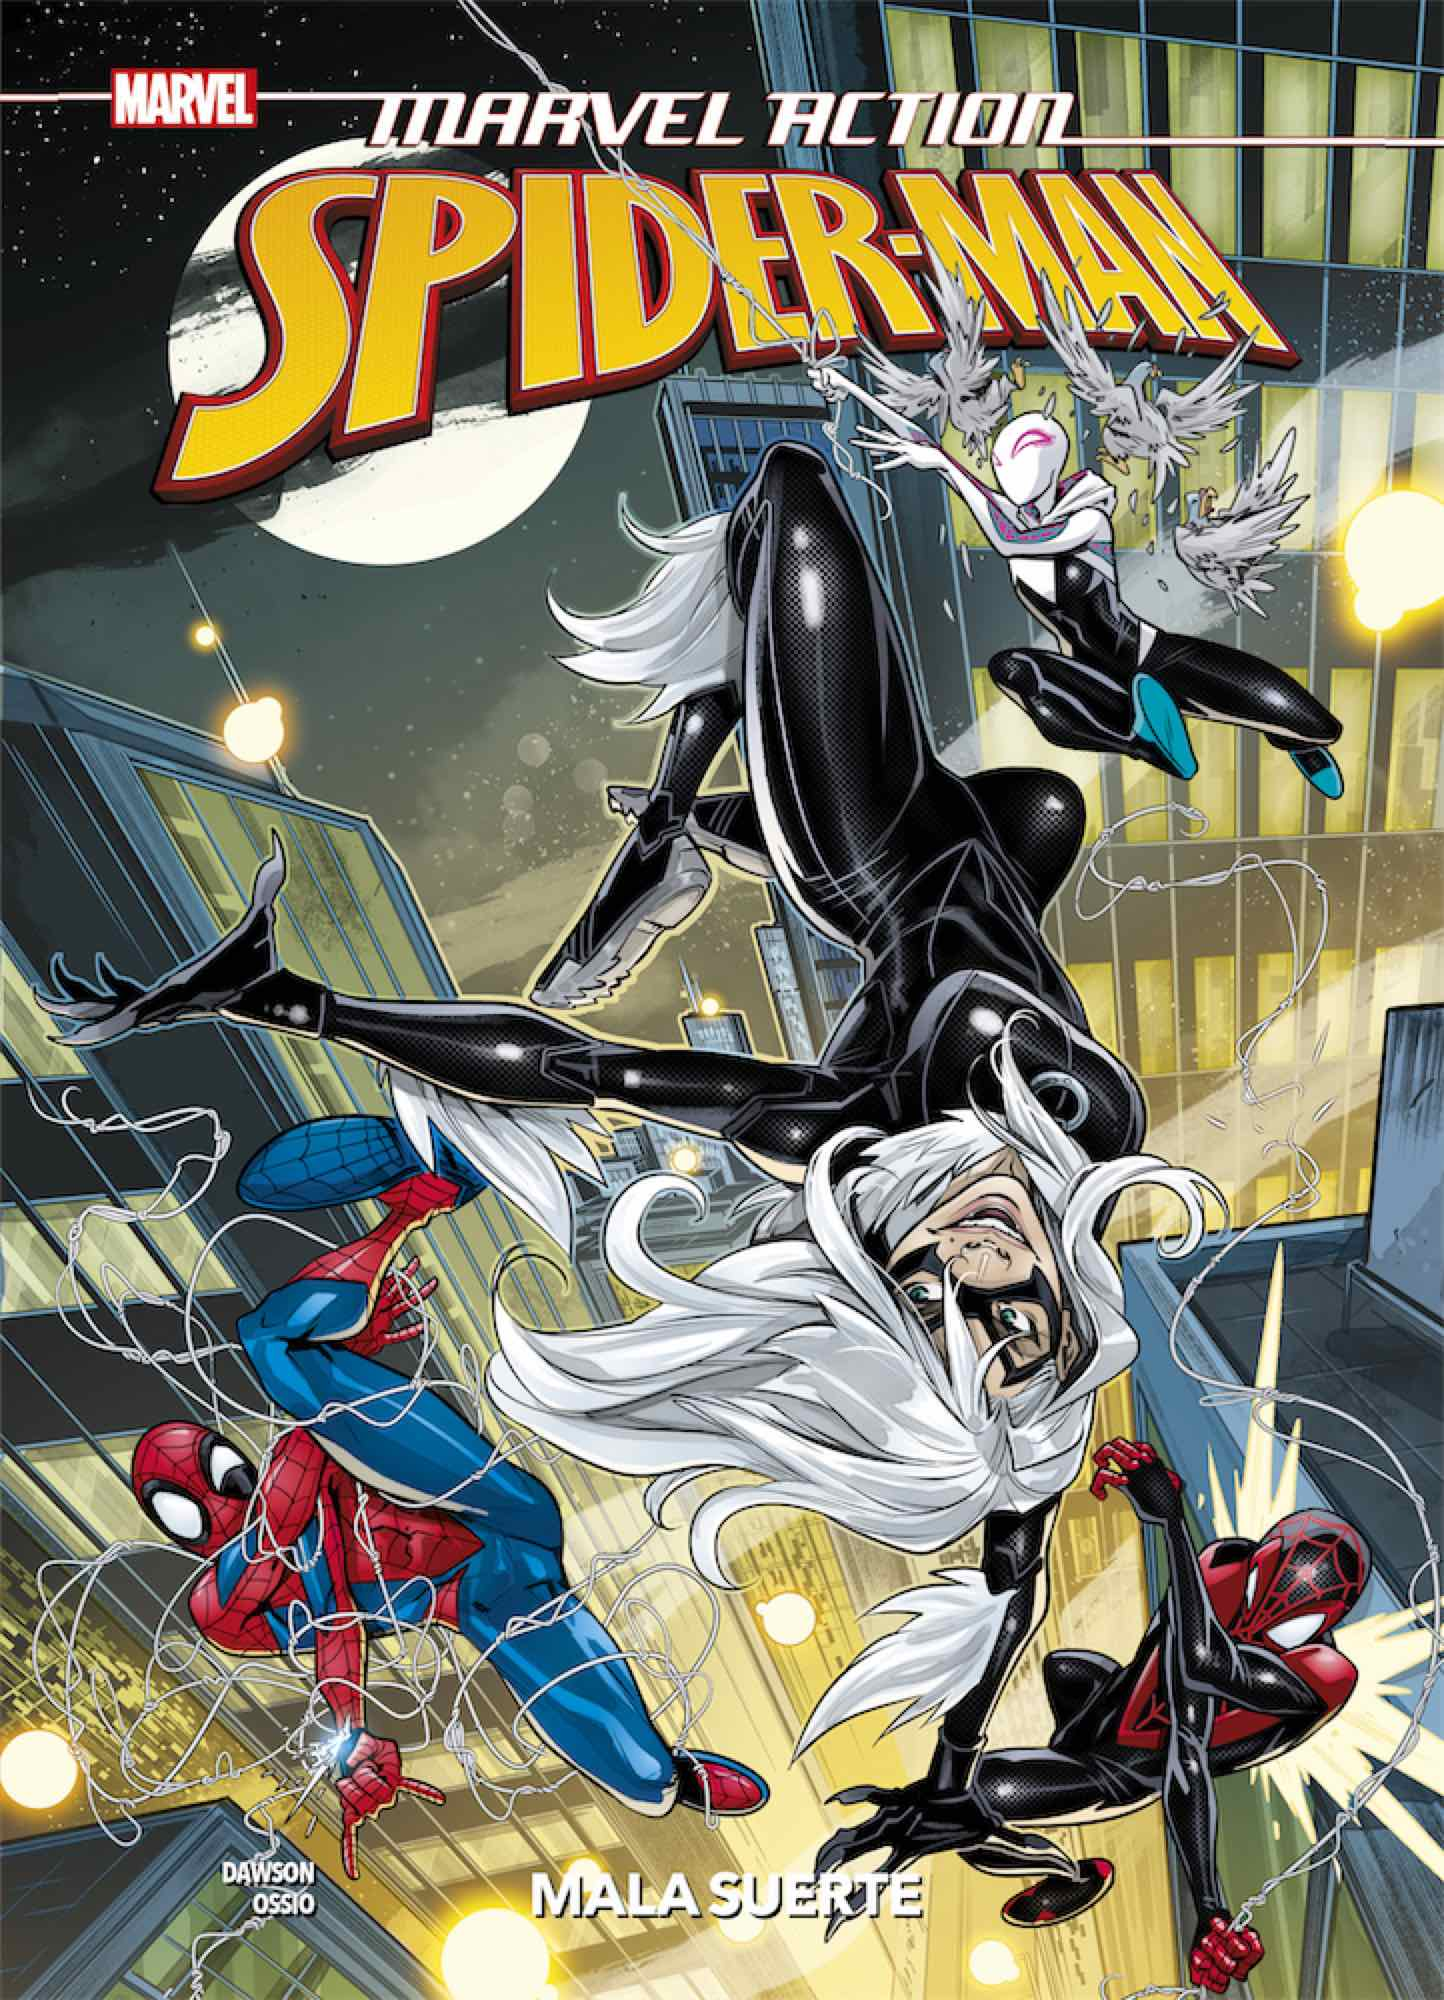 MARVEL ACTION. SPIDERMAN 03. MALA SUERTE